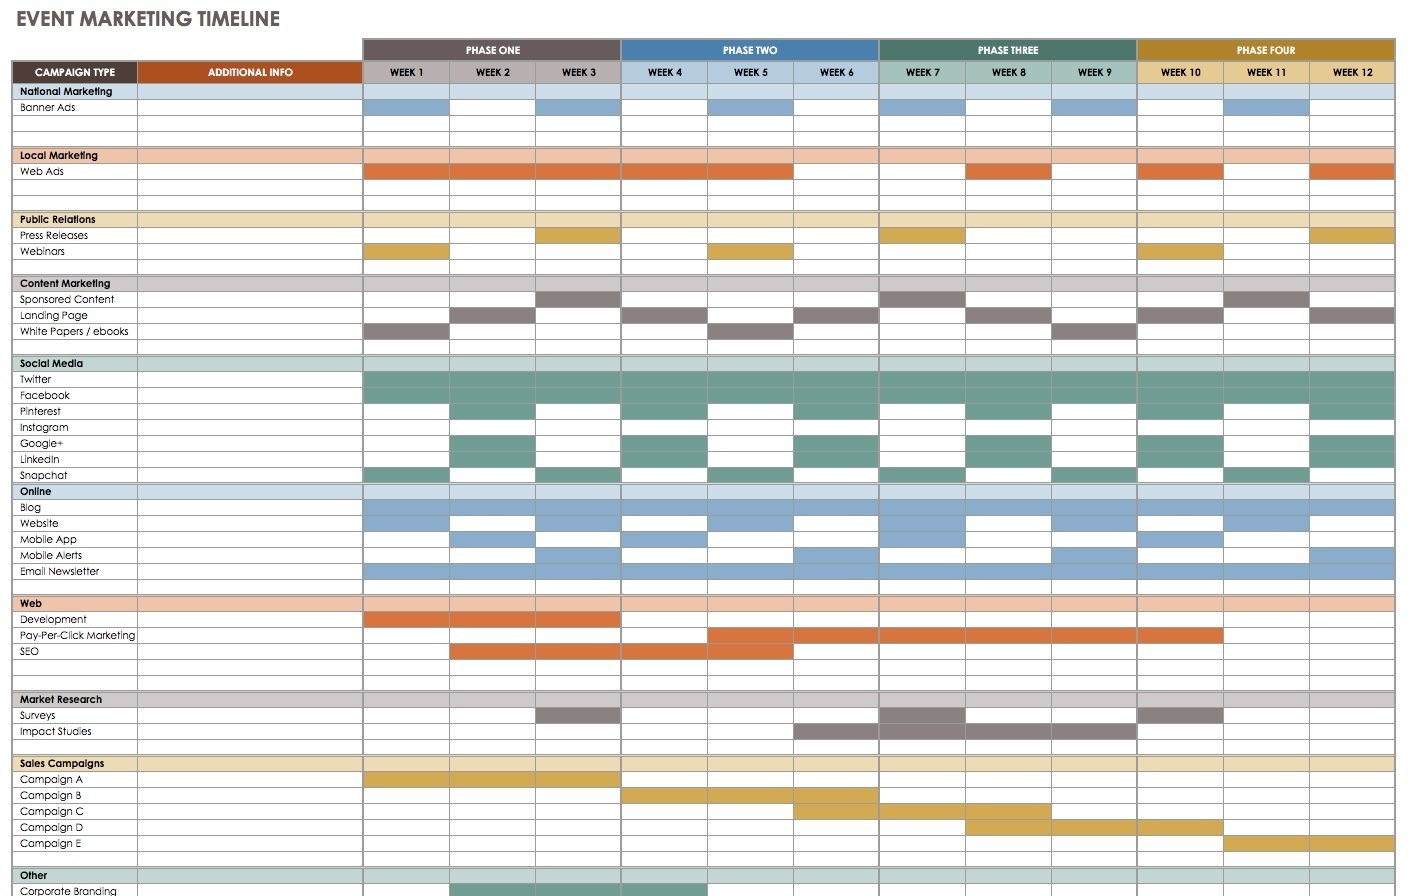 21 Free Event Planning Templates | Smartsheet regarding Calendar Of Events Template Free